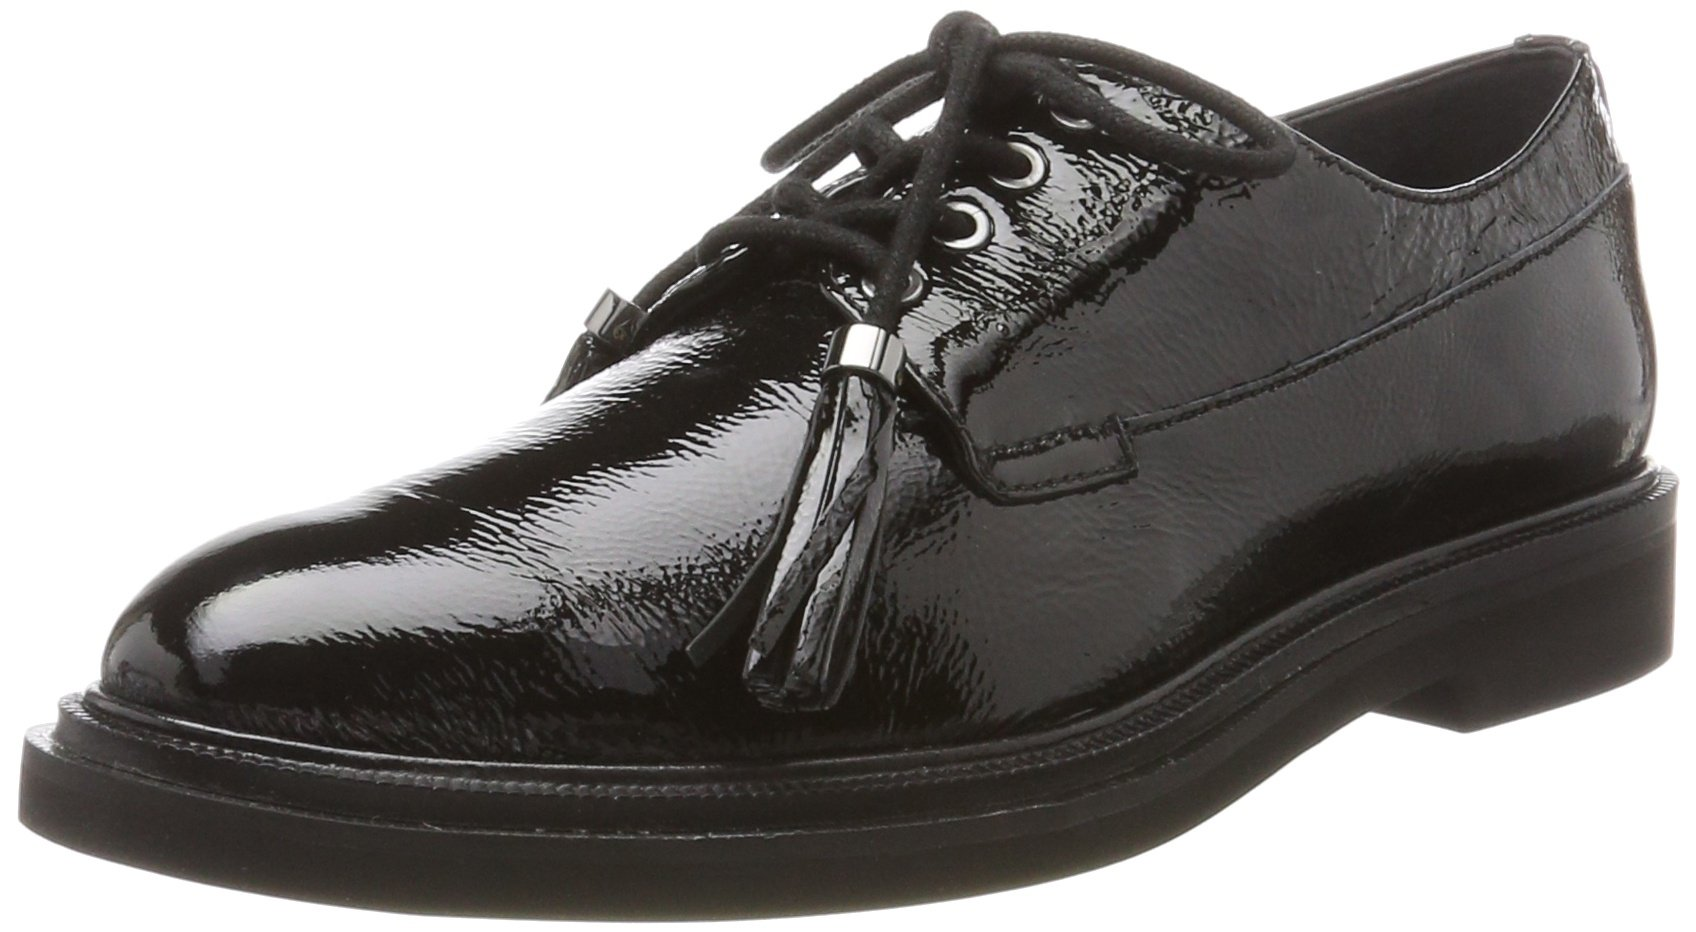 Kenneth Cole New York Women's Annie Menswear Style Patent Oxford, Black, 9 M US by Kenneth Cole New York